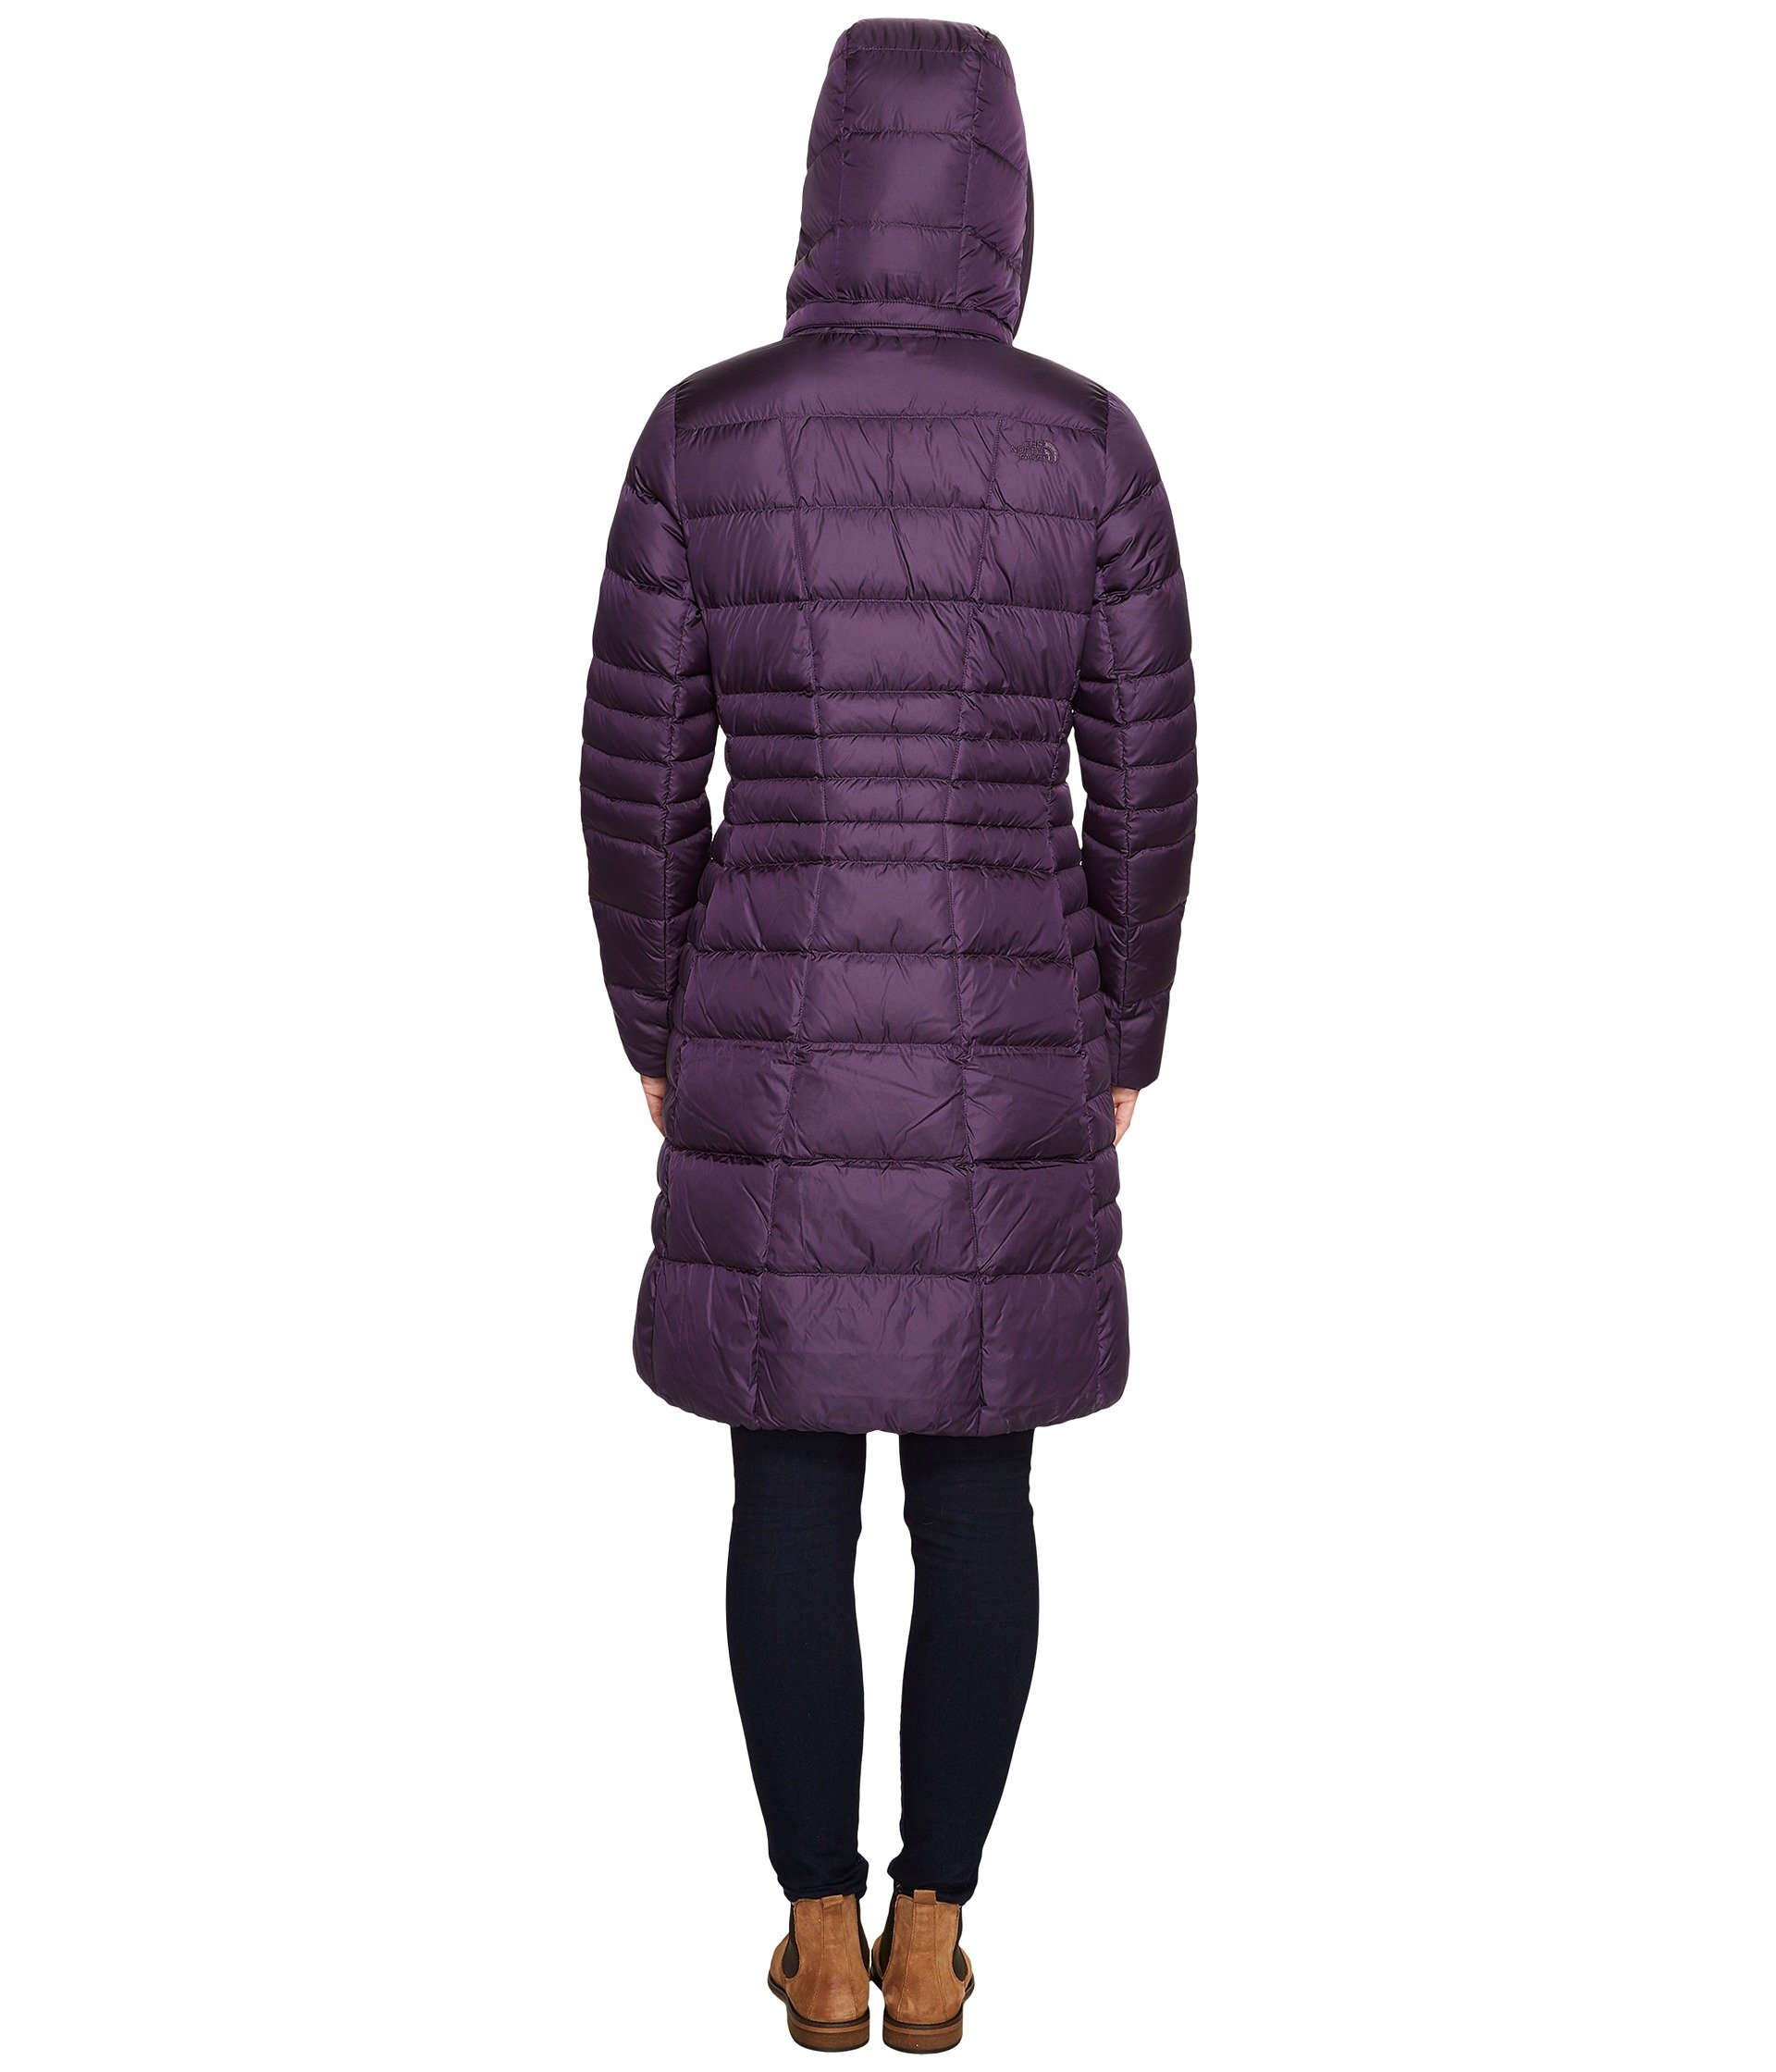 North face purple puffer jacket